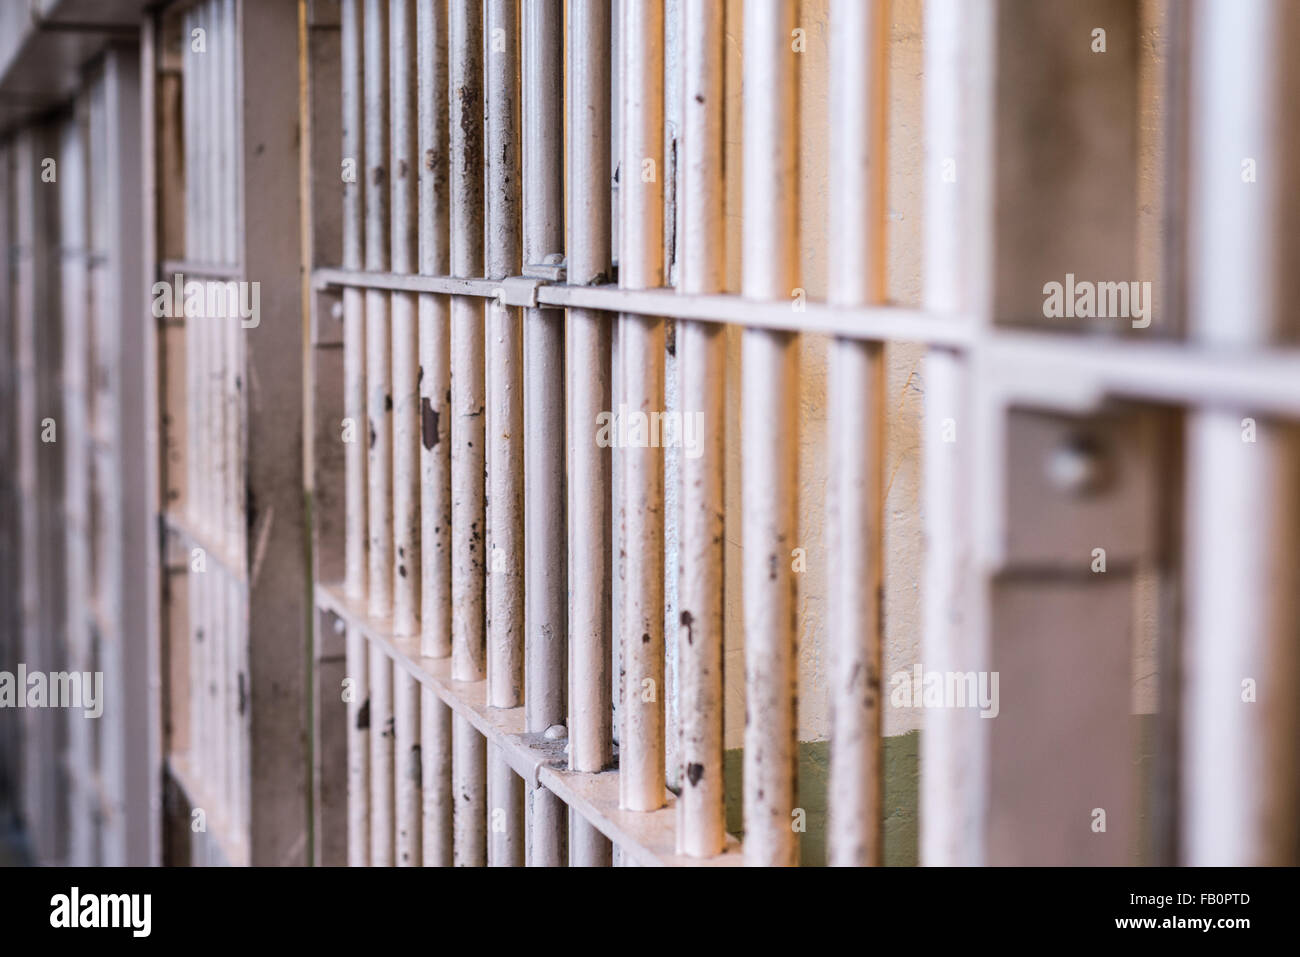 Bars of a cell at Alcatraz penitentiary - Stock Image